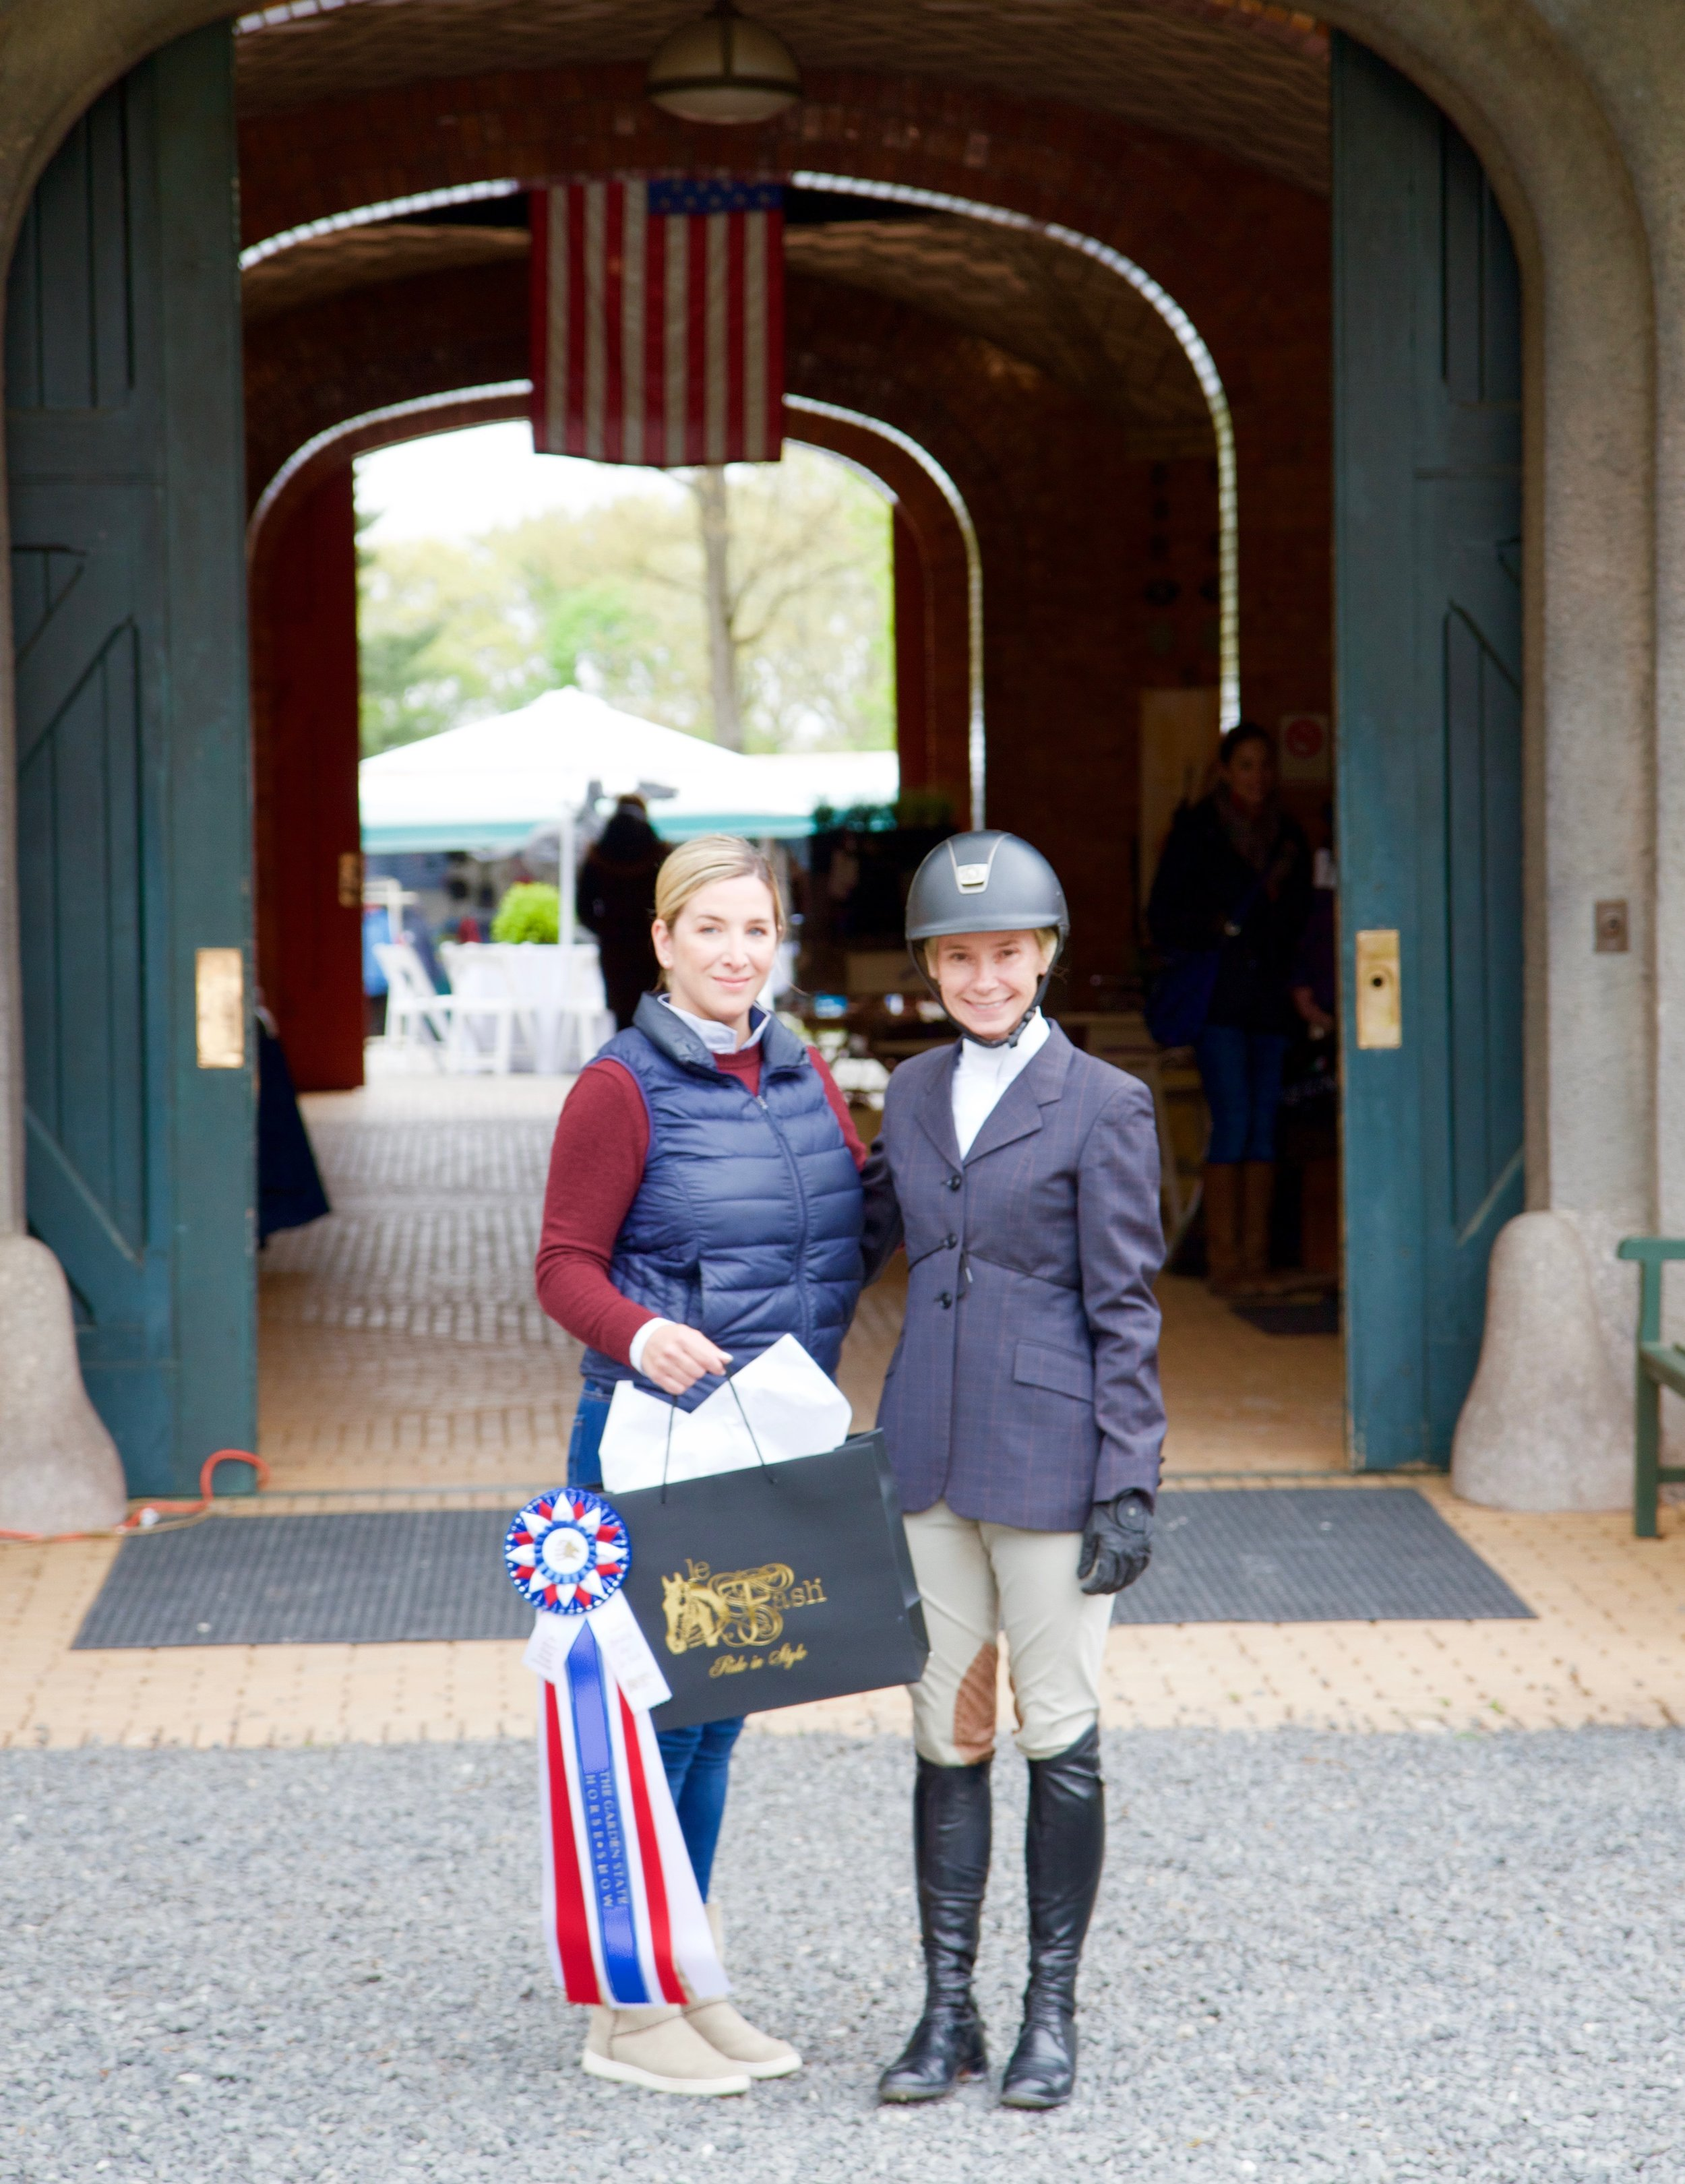 Style of Riding award winner Valerie Primavera and Le Fash owner Arianna Vestino.